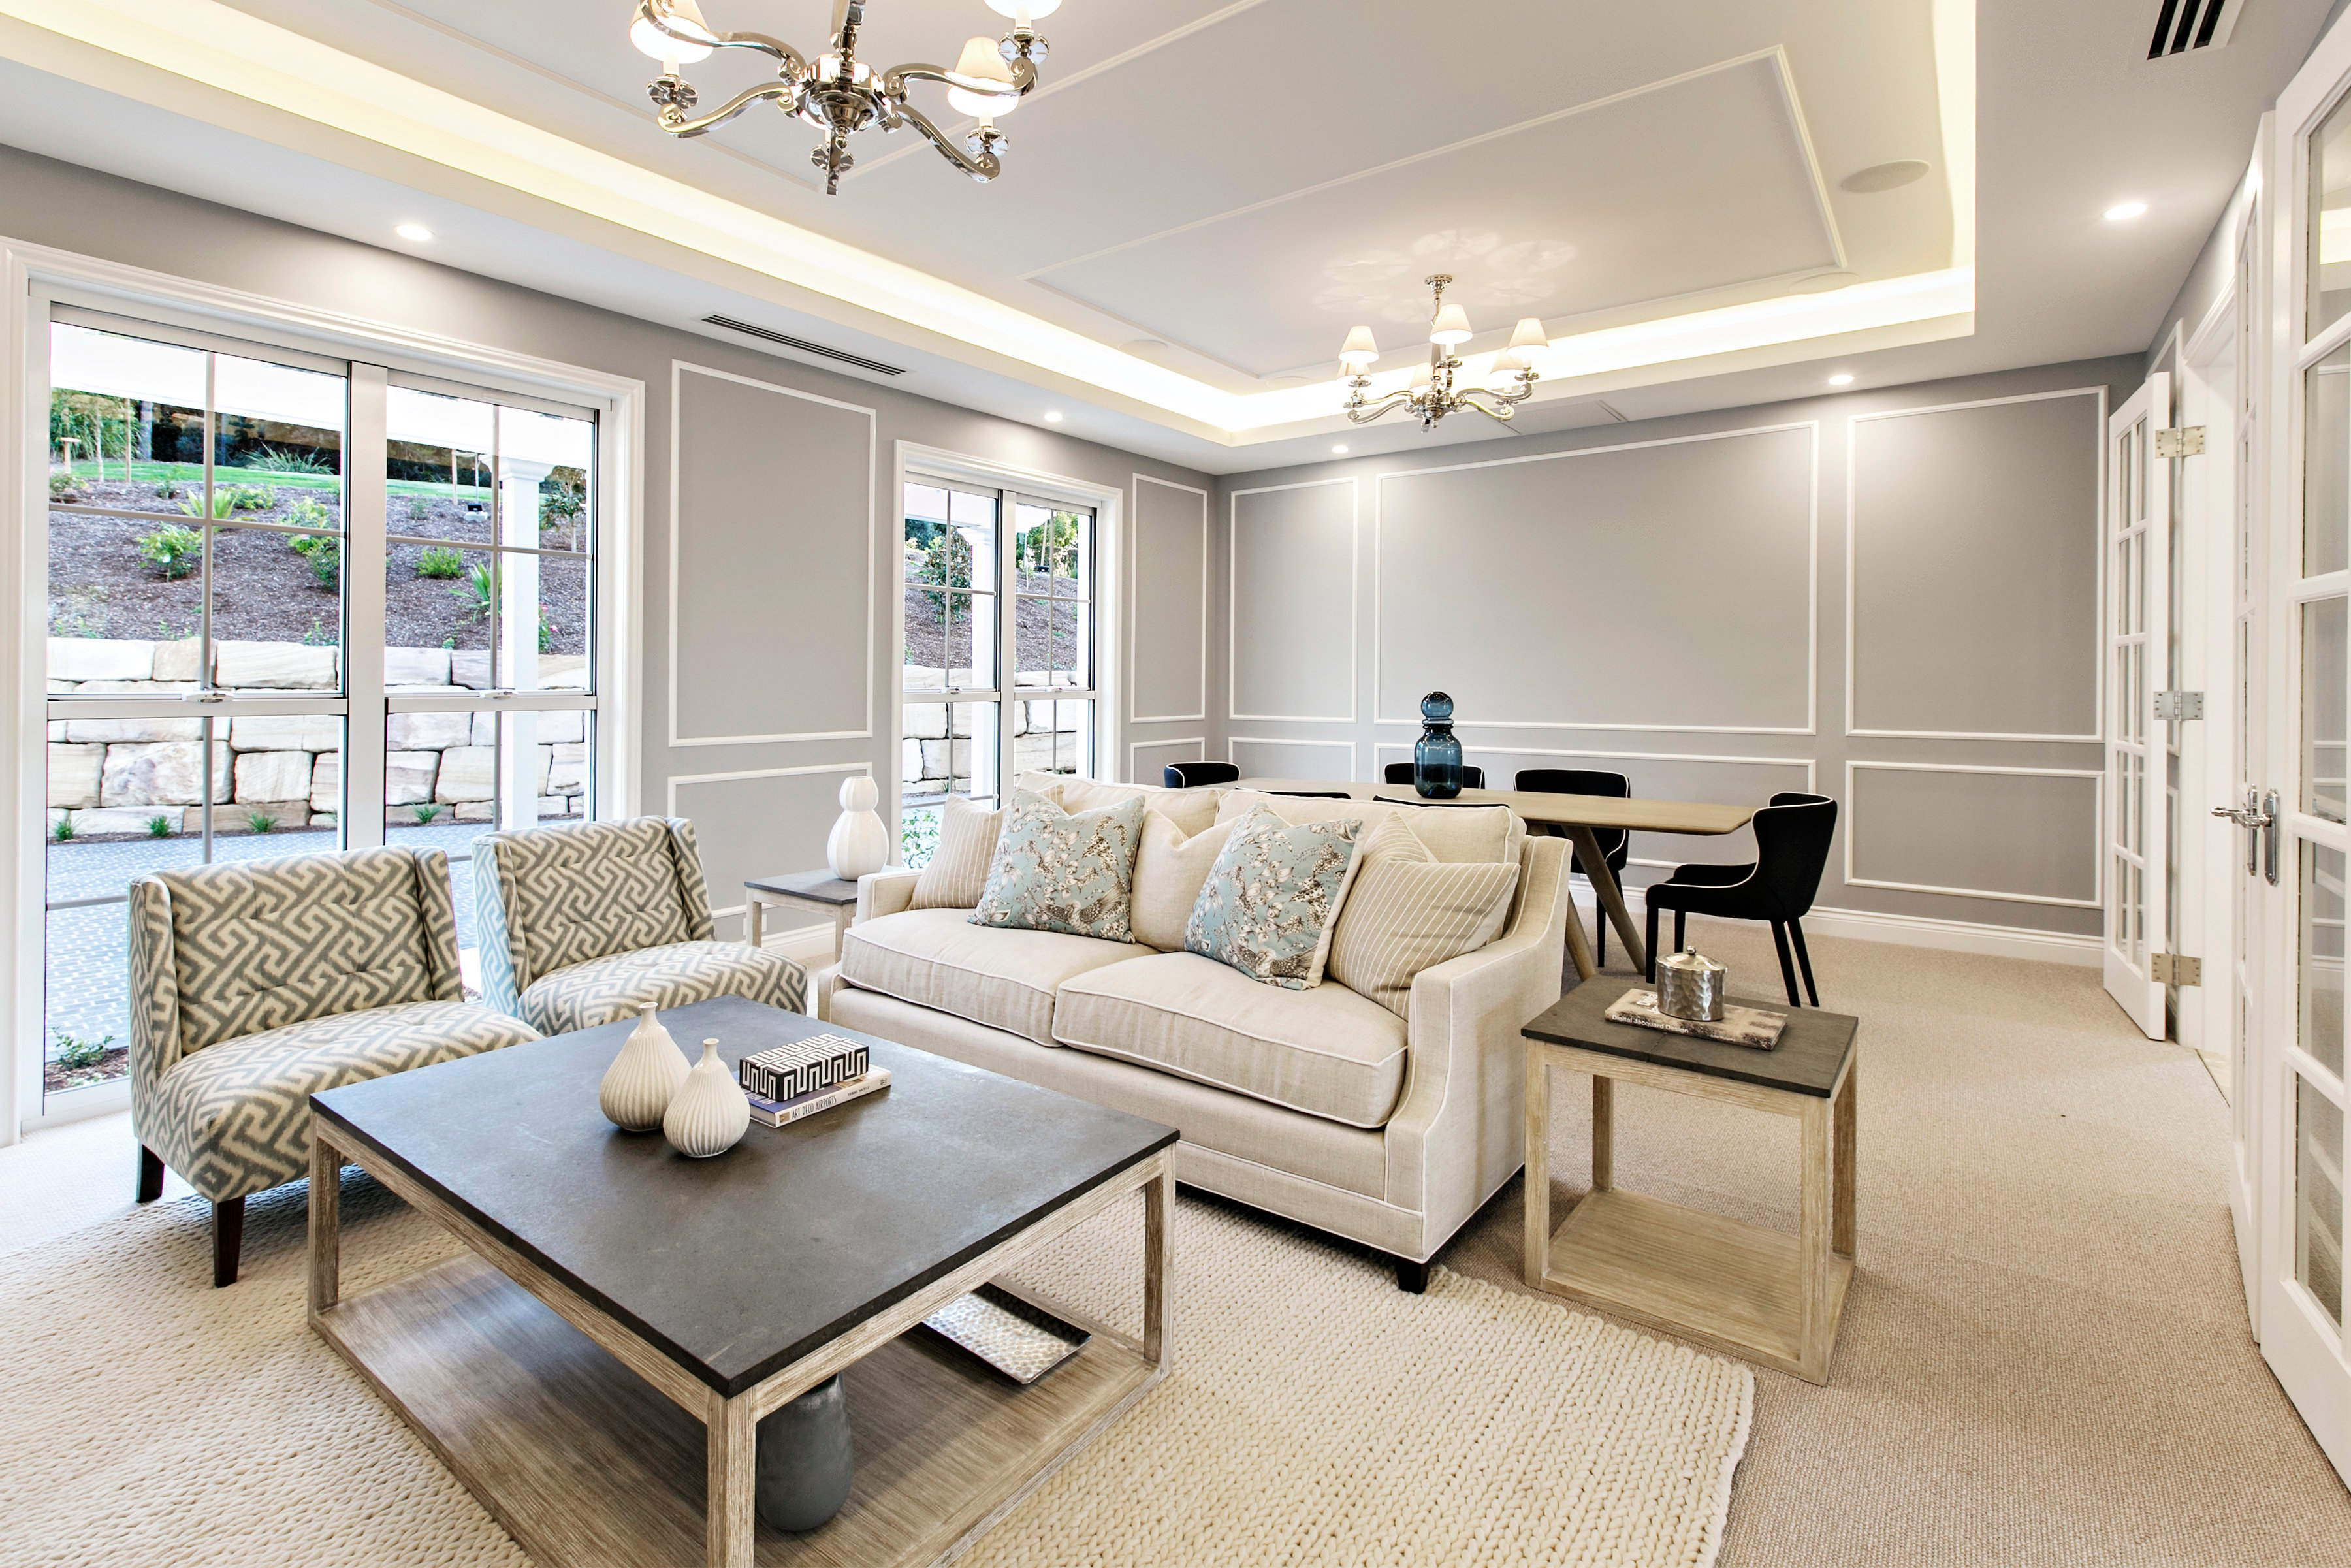 Amazing formal room with timber trims and ceiling led lighting ...